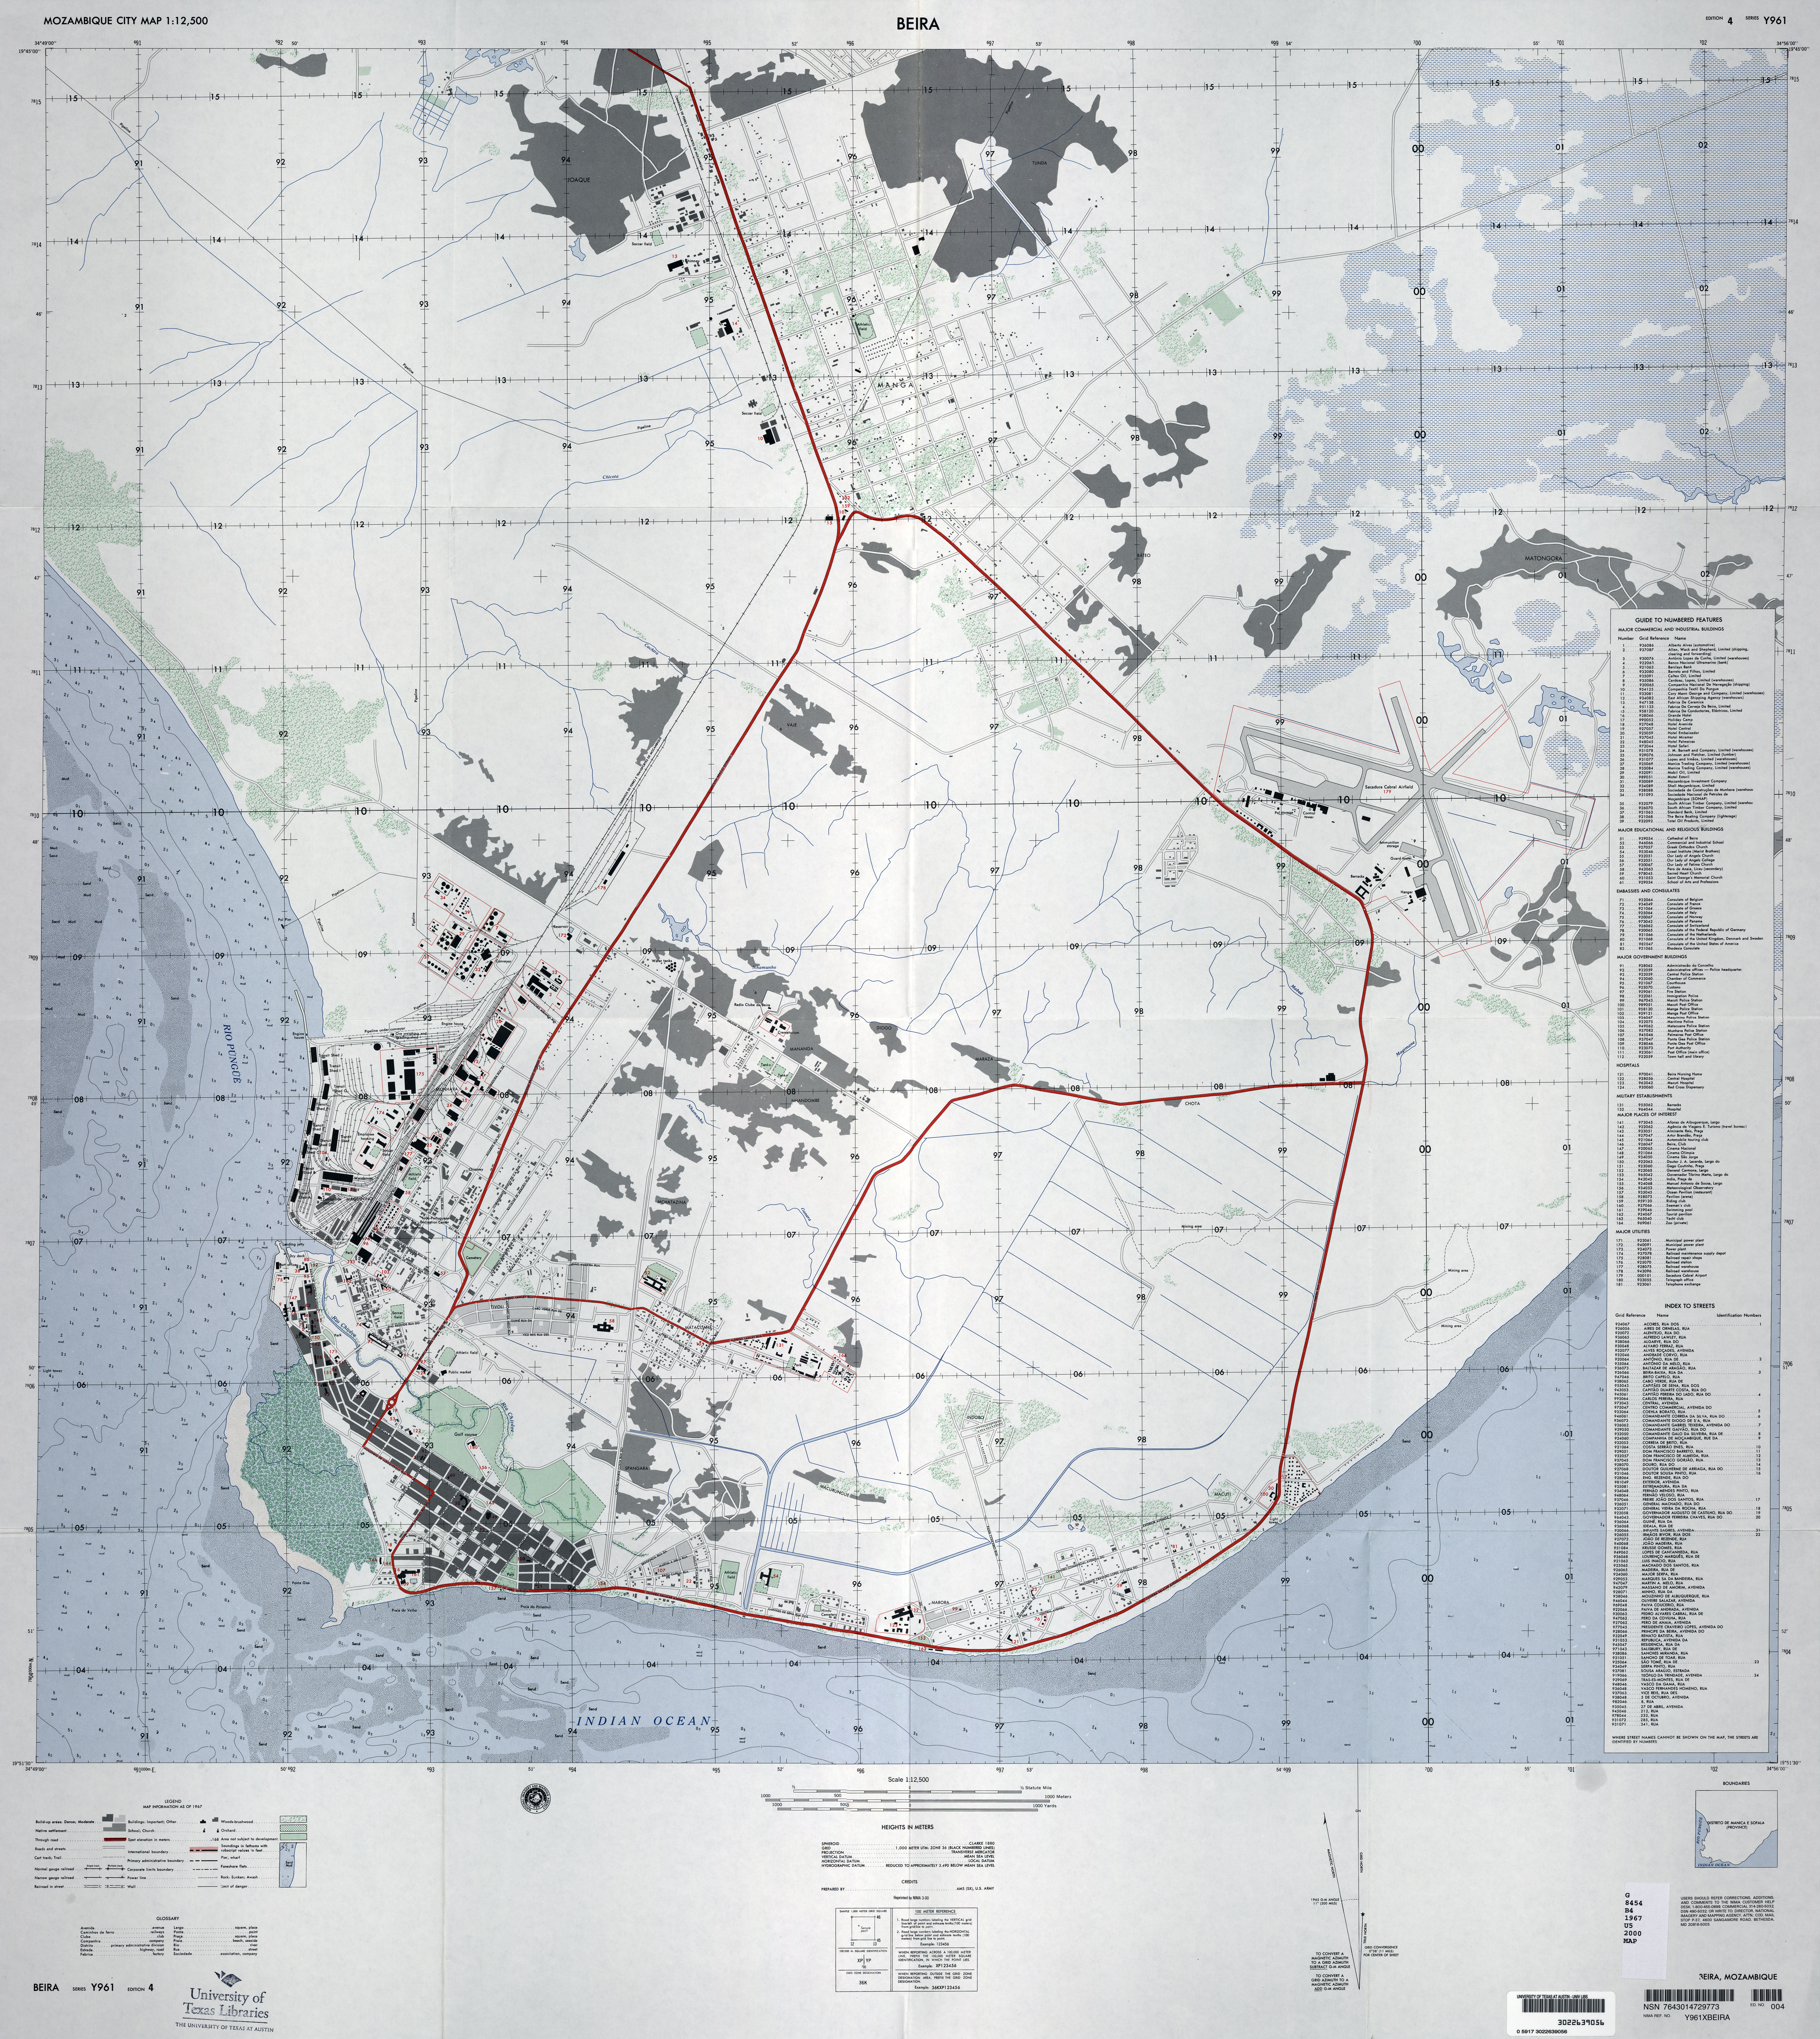 Download free mozambique maps beira gumiabroncs Image collections